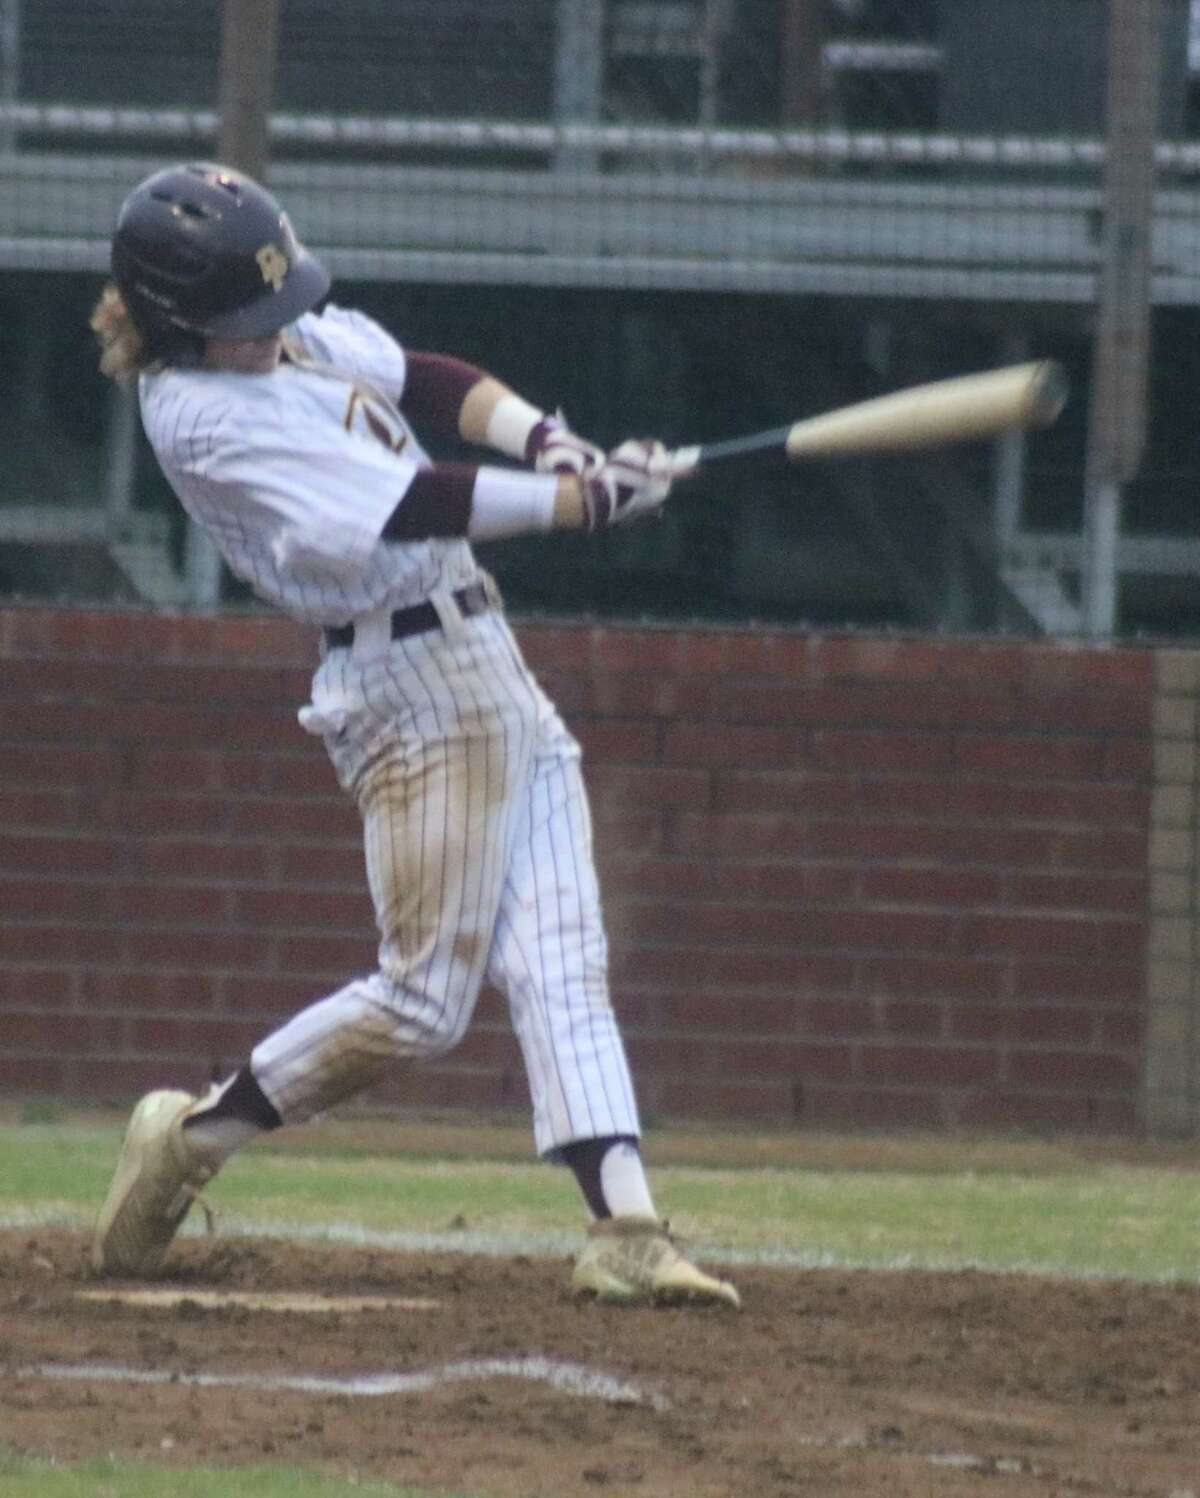 Wyatt Woodall connects for a two-RBI single in the first inning Tuesday night.